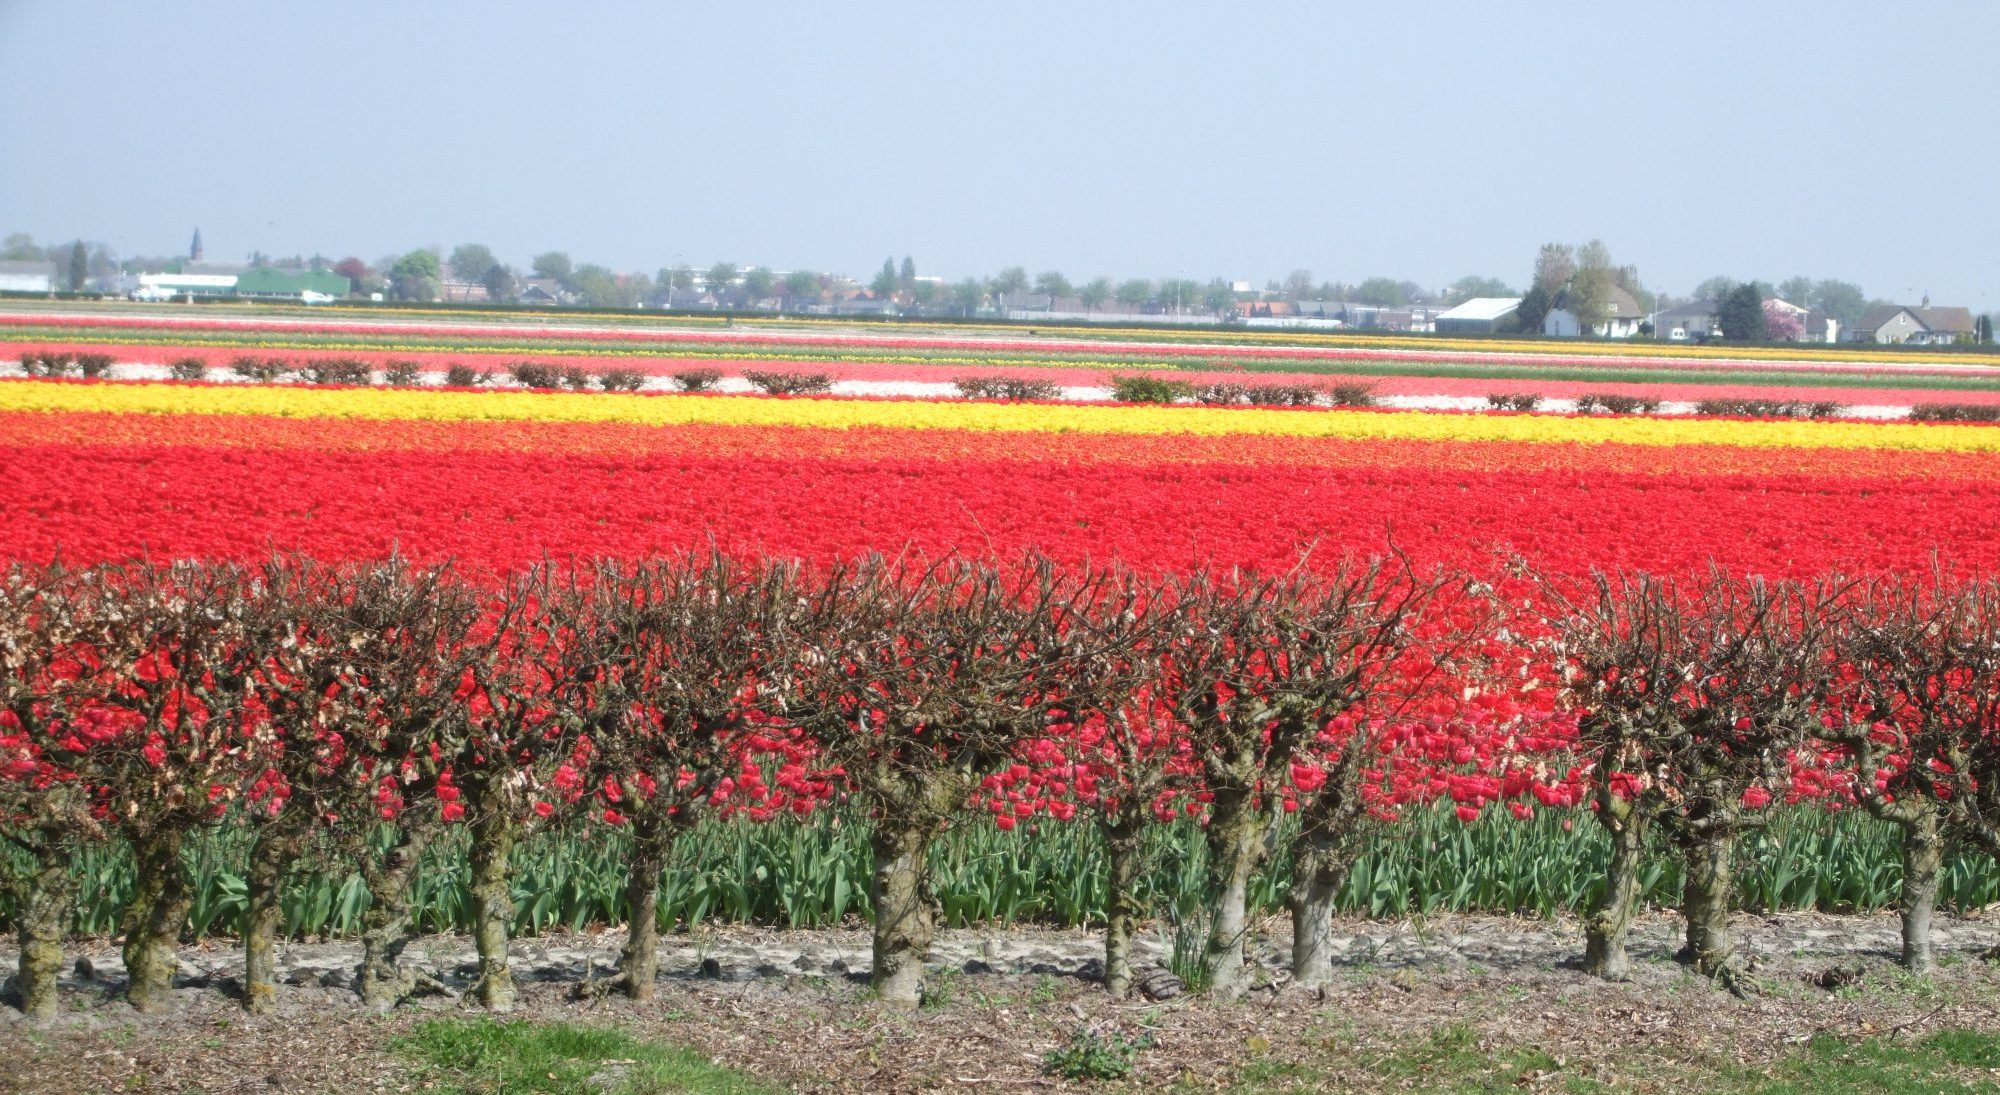 This is the kind of view you'll see if you drive the Bollenstreek route in season.